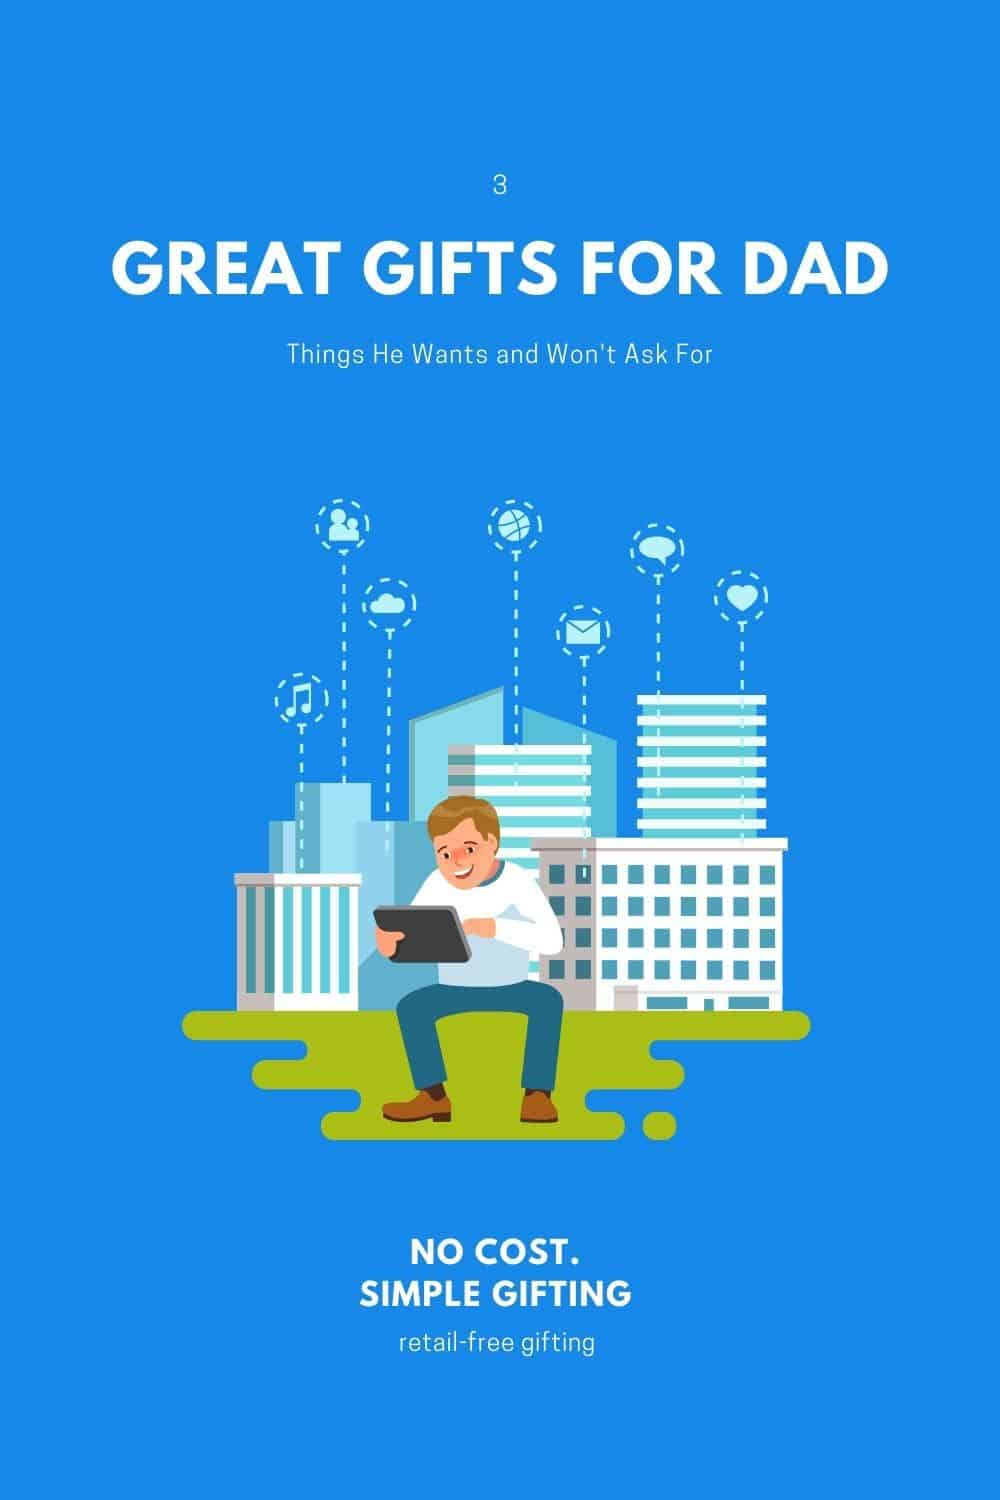 ideas for gifts dads really want and won't ask for- dad on computer